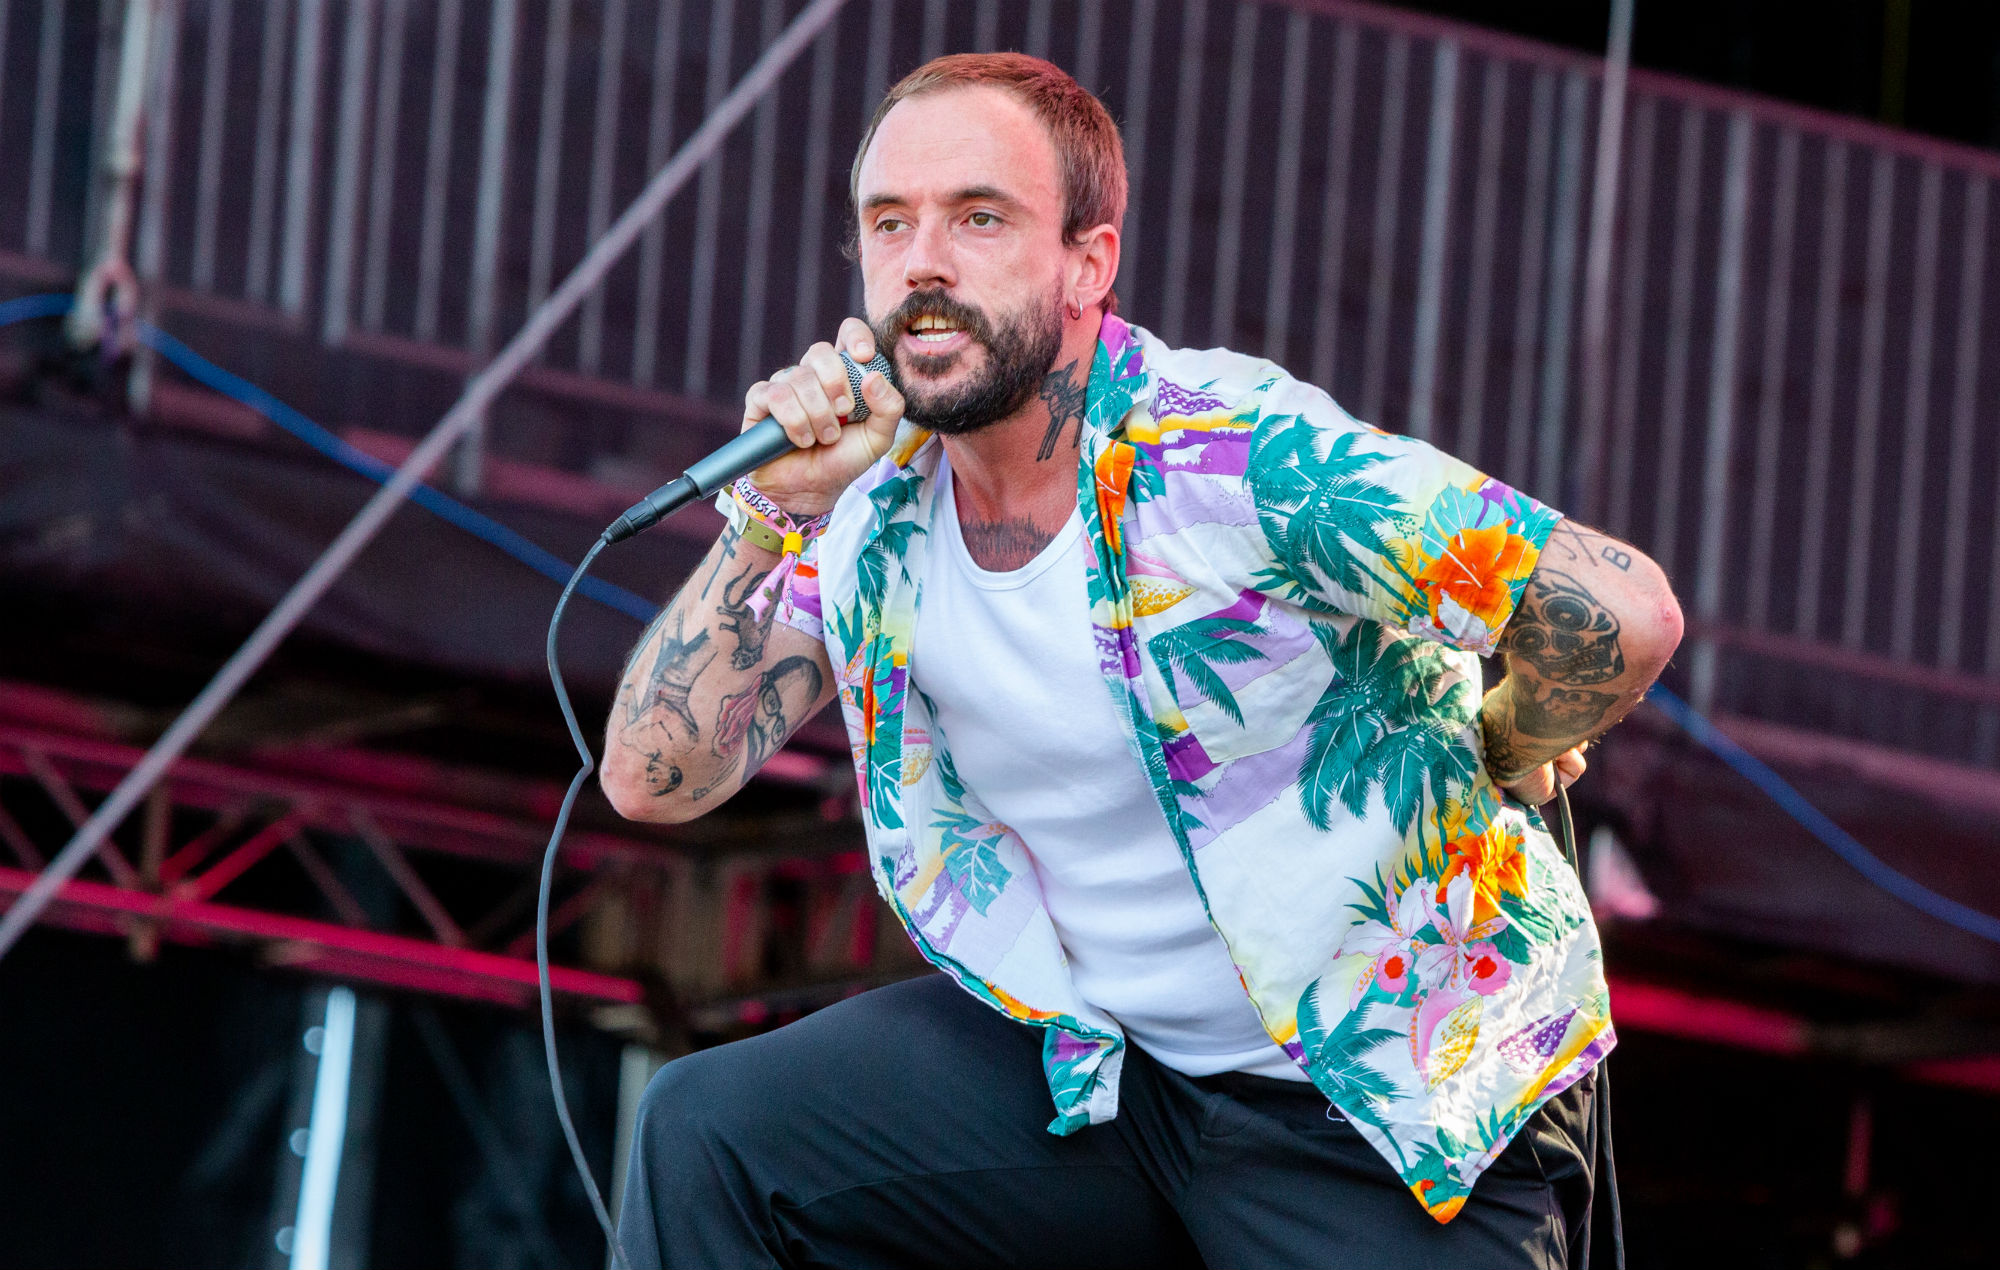 IDLES, Pussy Riot, Sports Team to play virtual Block By Blockwest festival in Minecraft - EpicNews